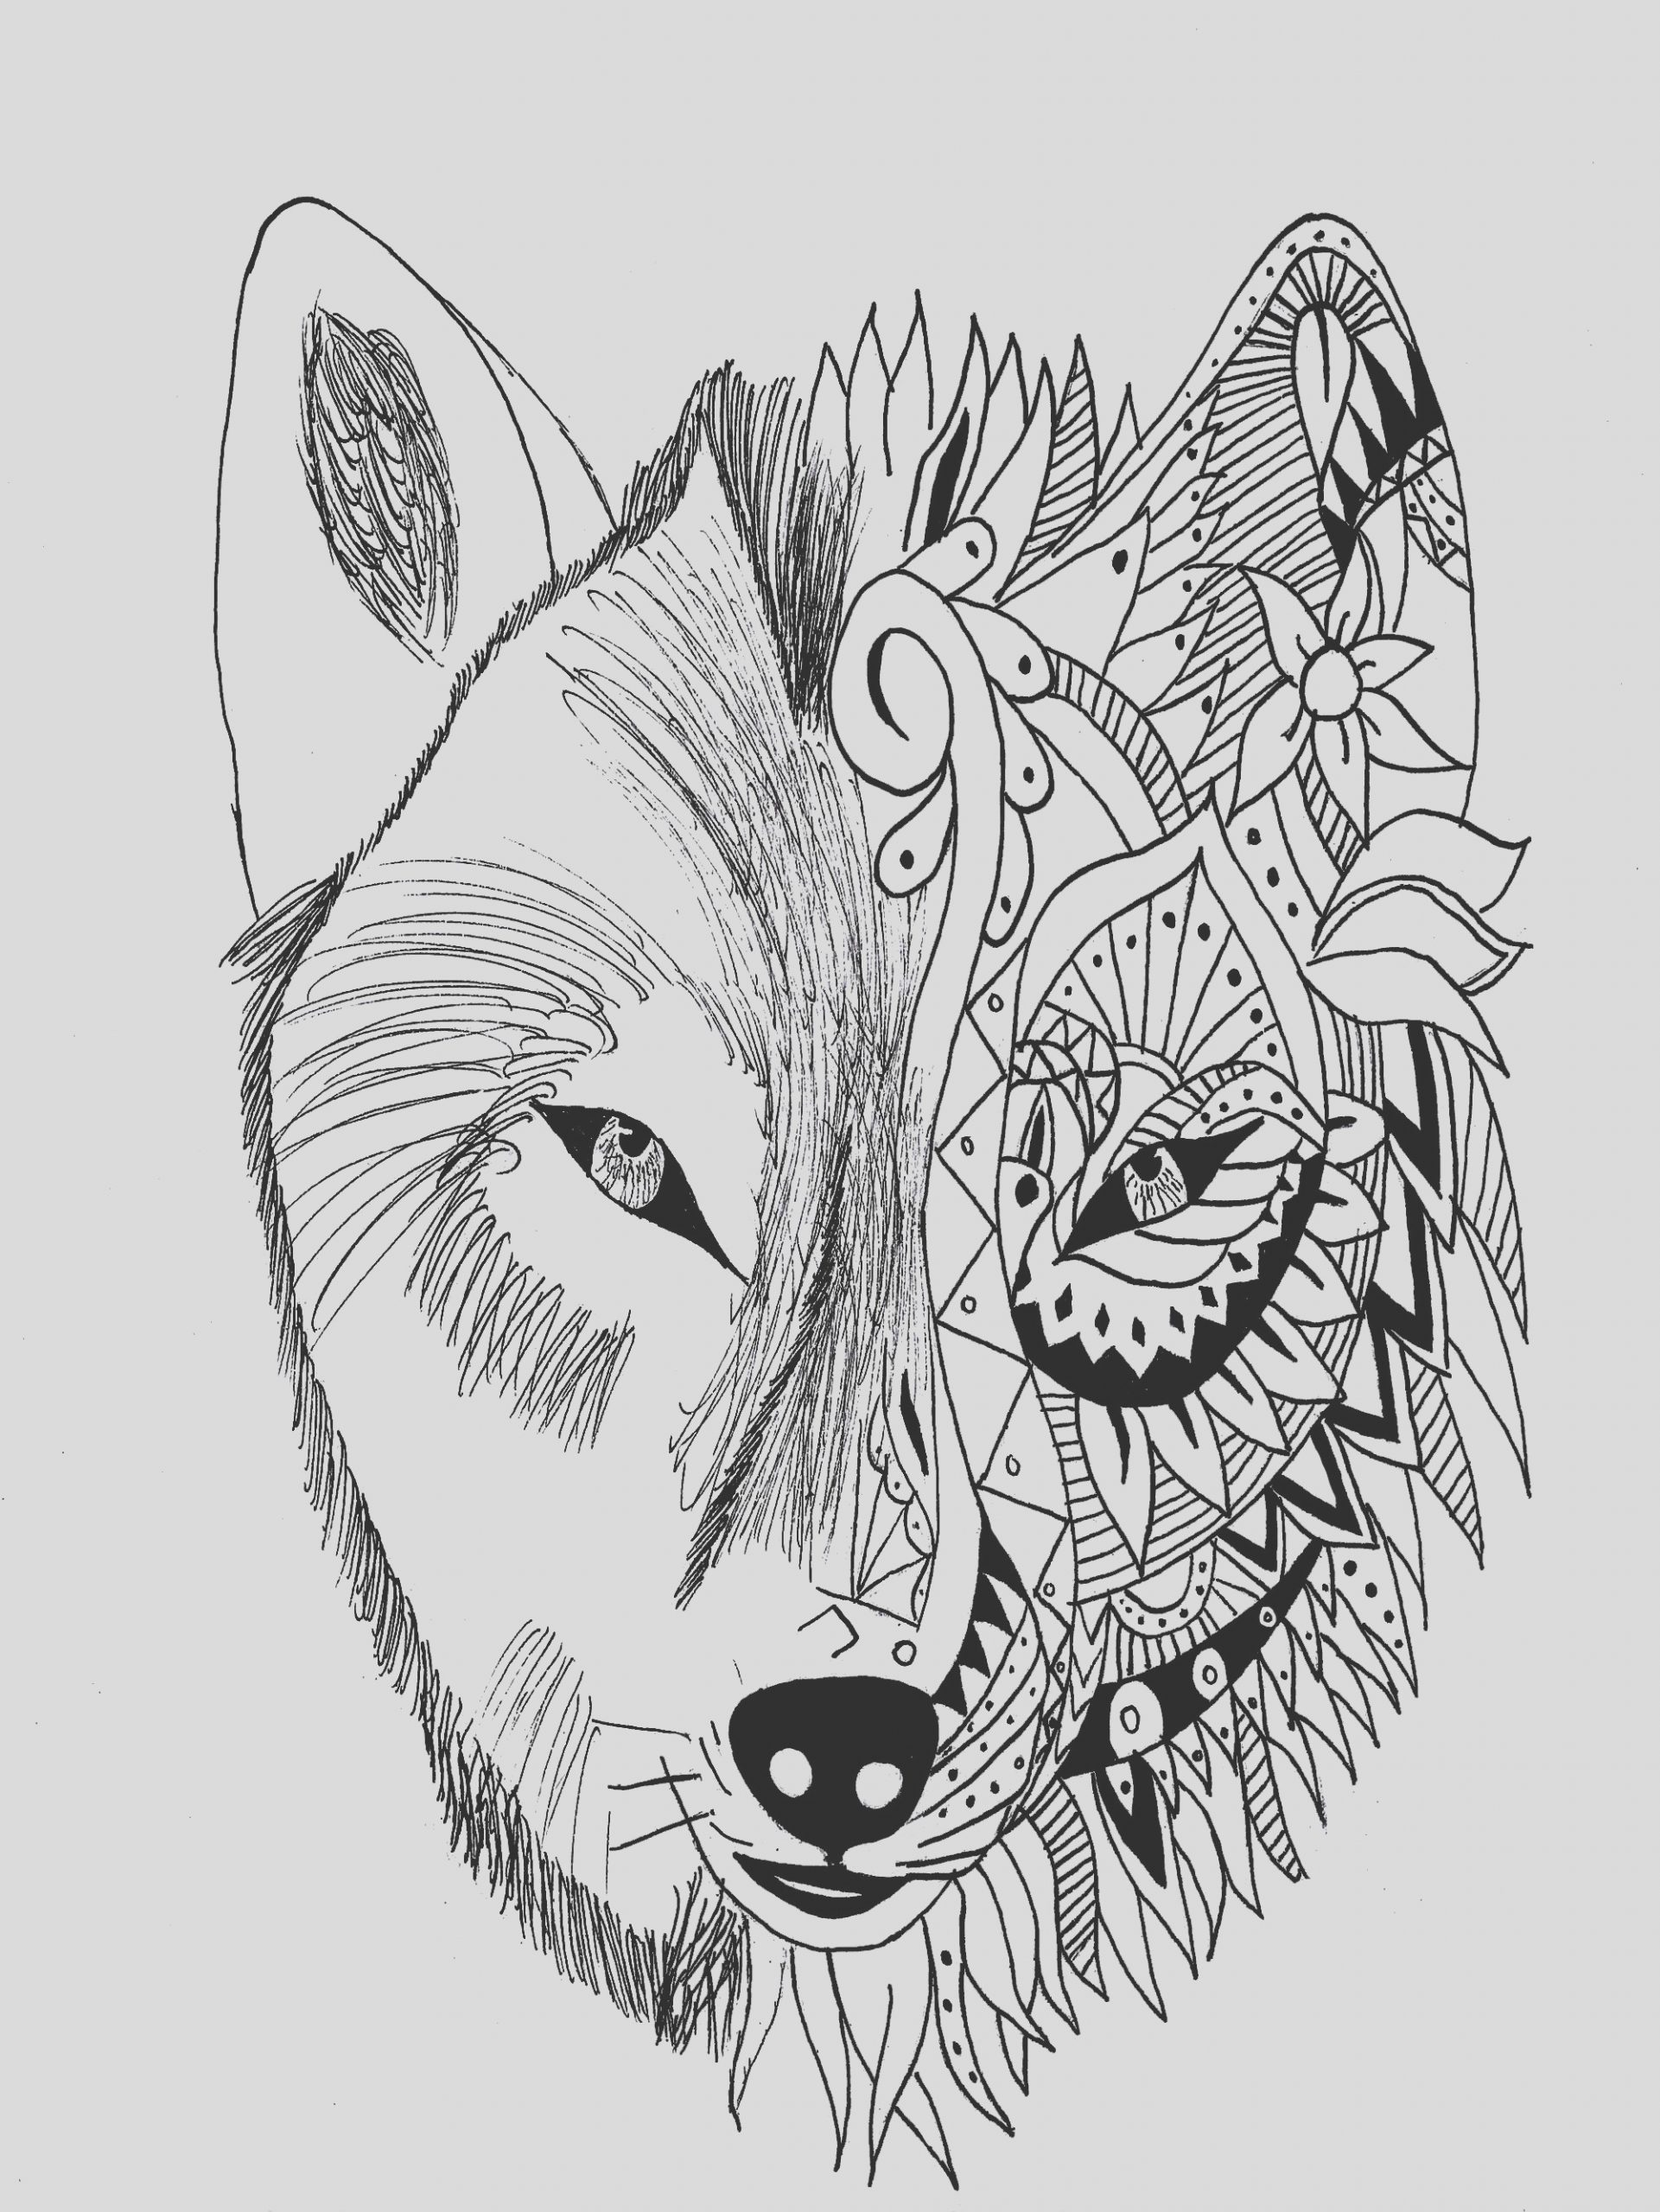 image=tatoo coloring page tattoo wolf krissy 1